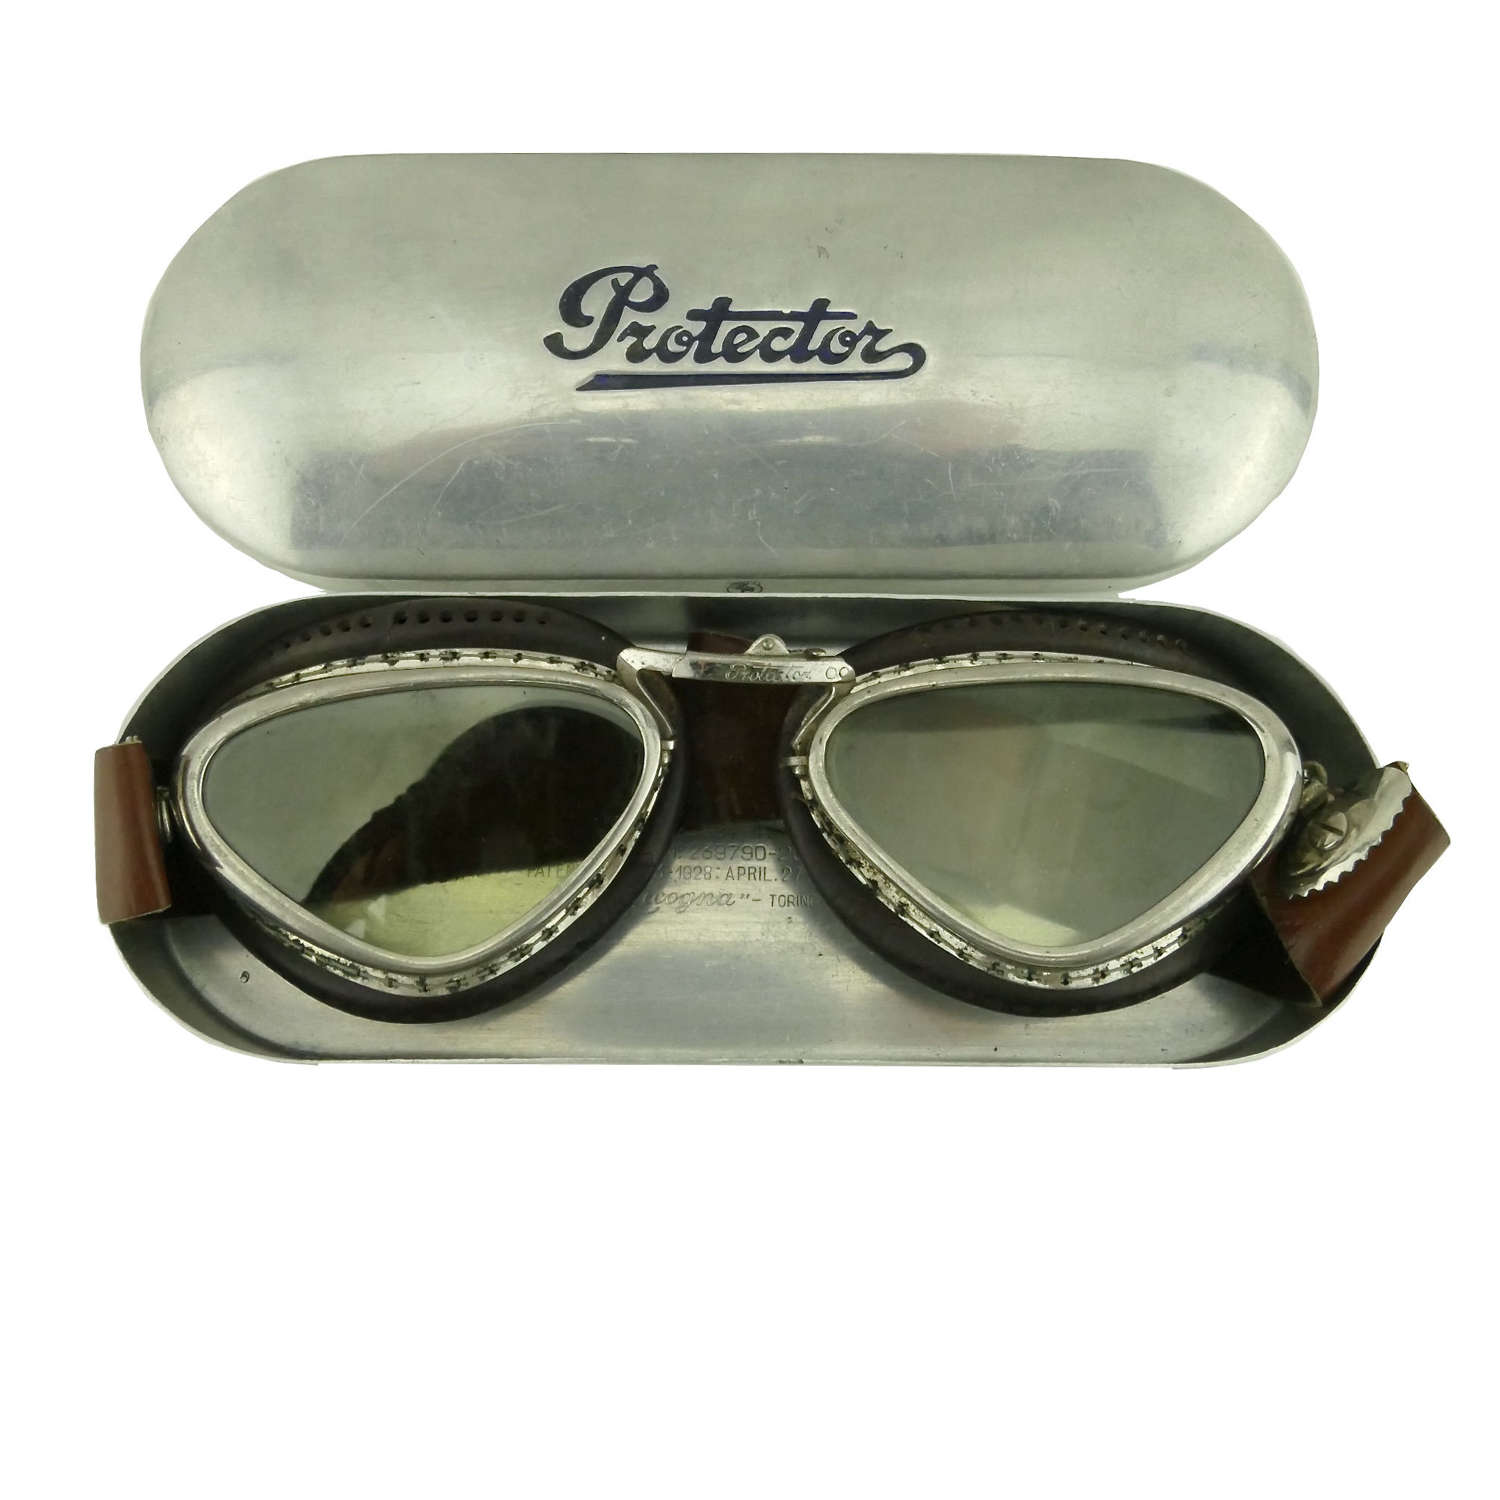 Italian 'Protector' flying goggles, cased